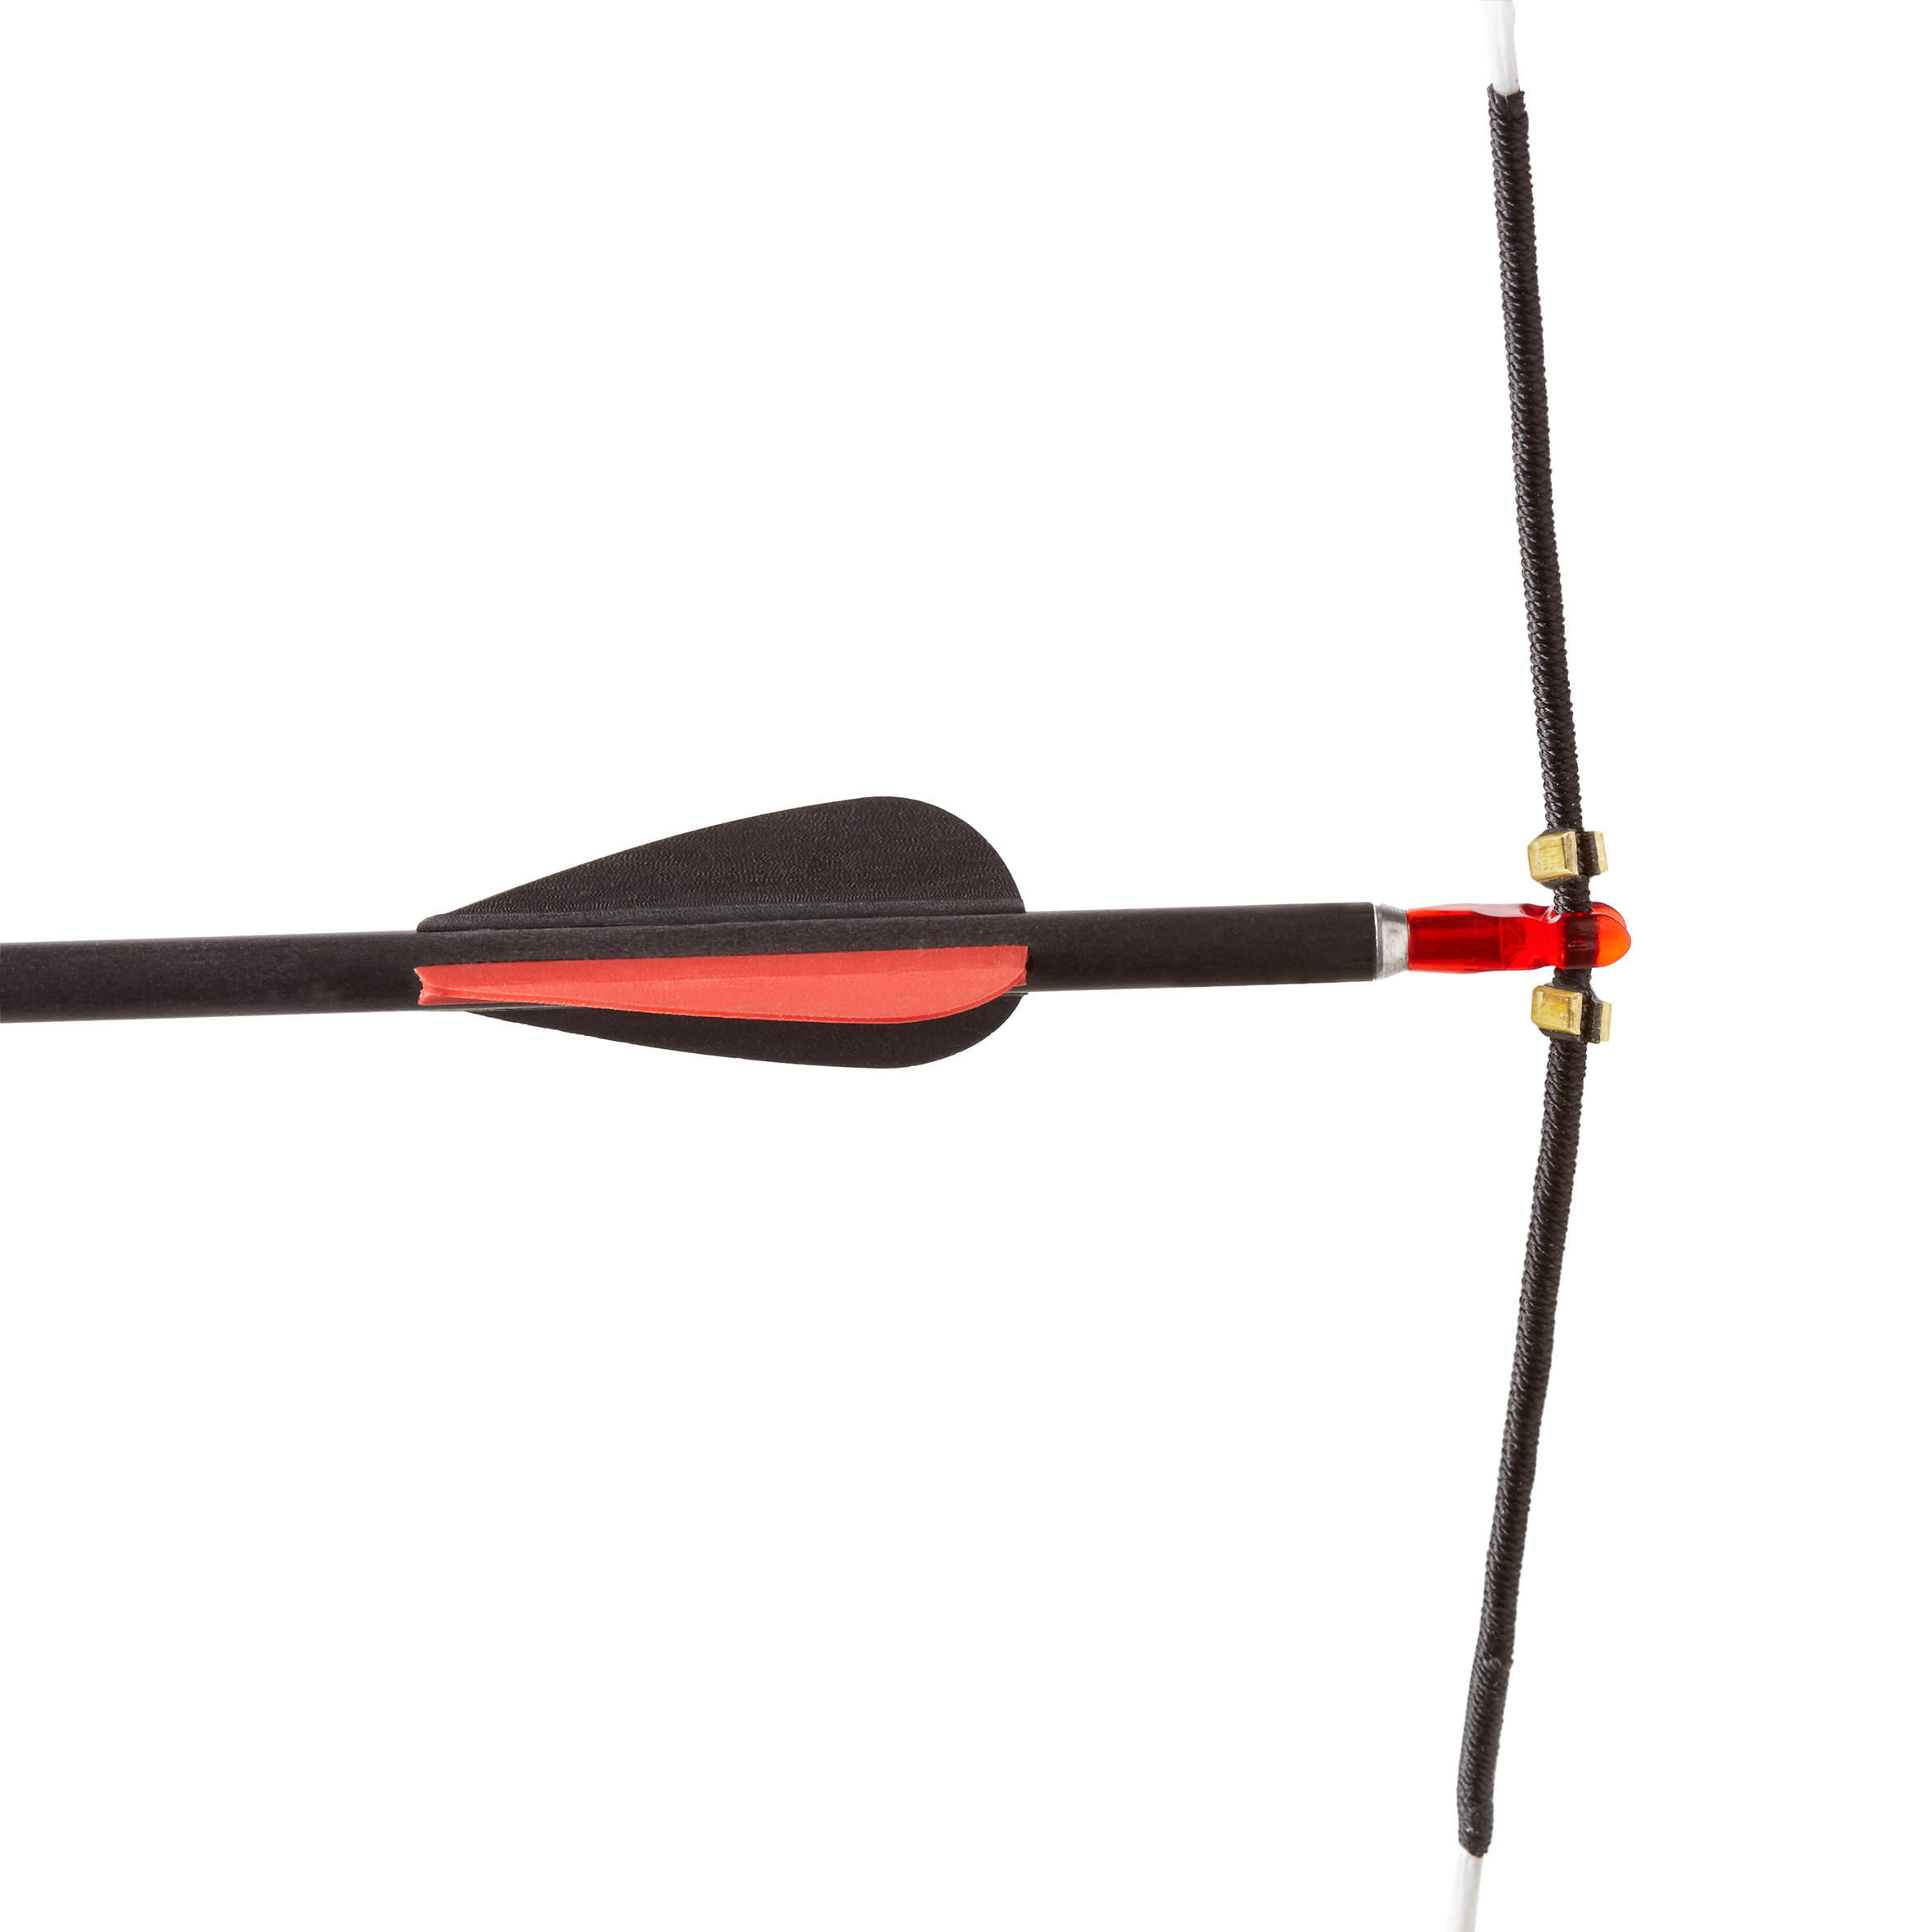 Fast Flight Archery Bowstring